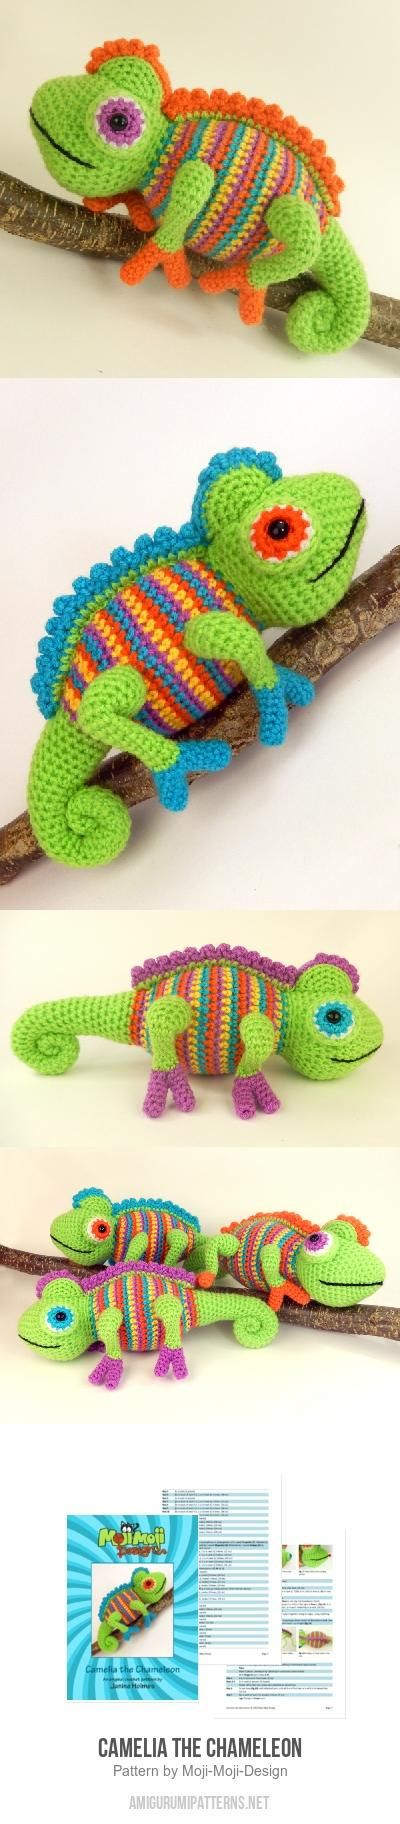 My Hobby Is Crochet: Camelia the Chameleon amigurumi ...